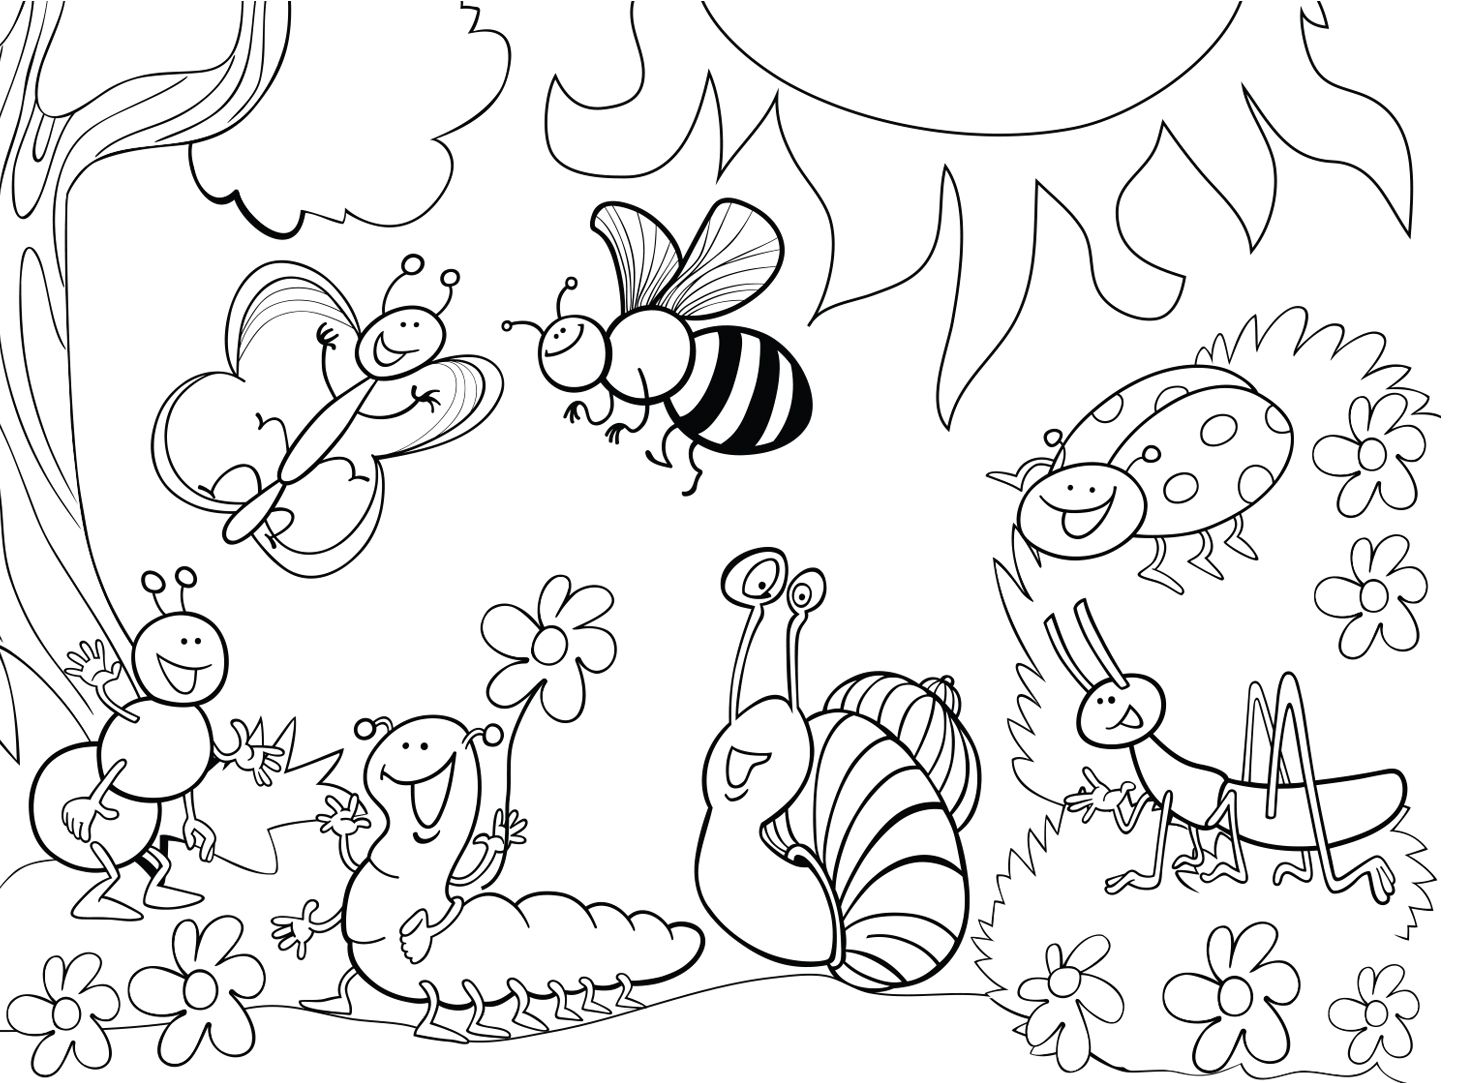 Garden Insect Coloring Page